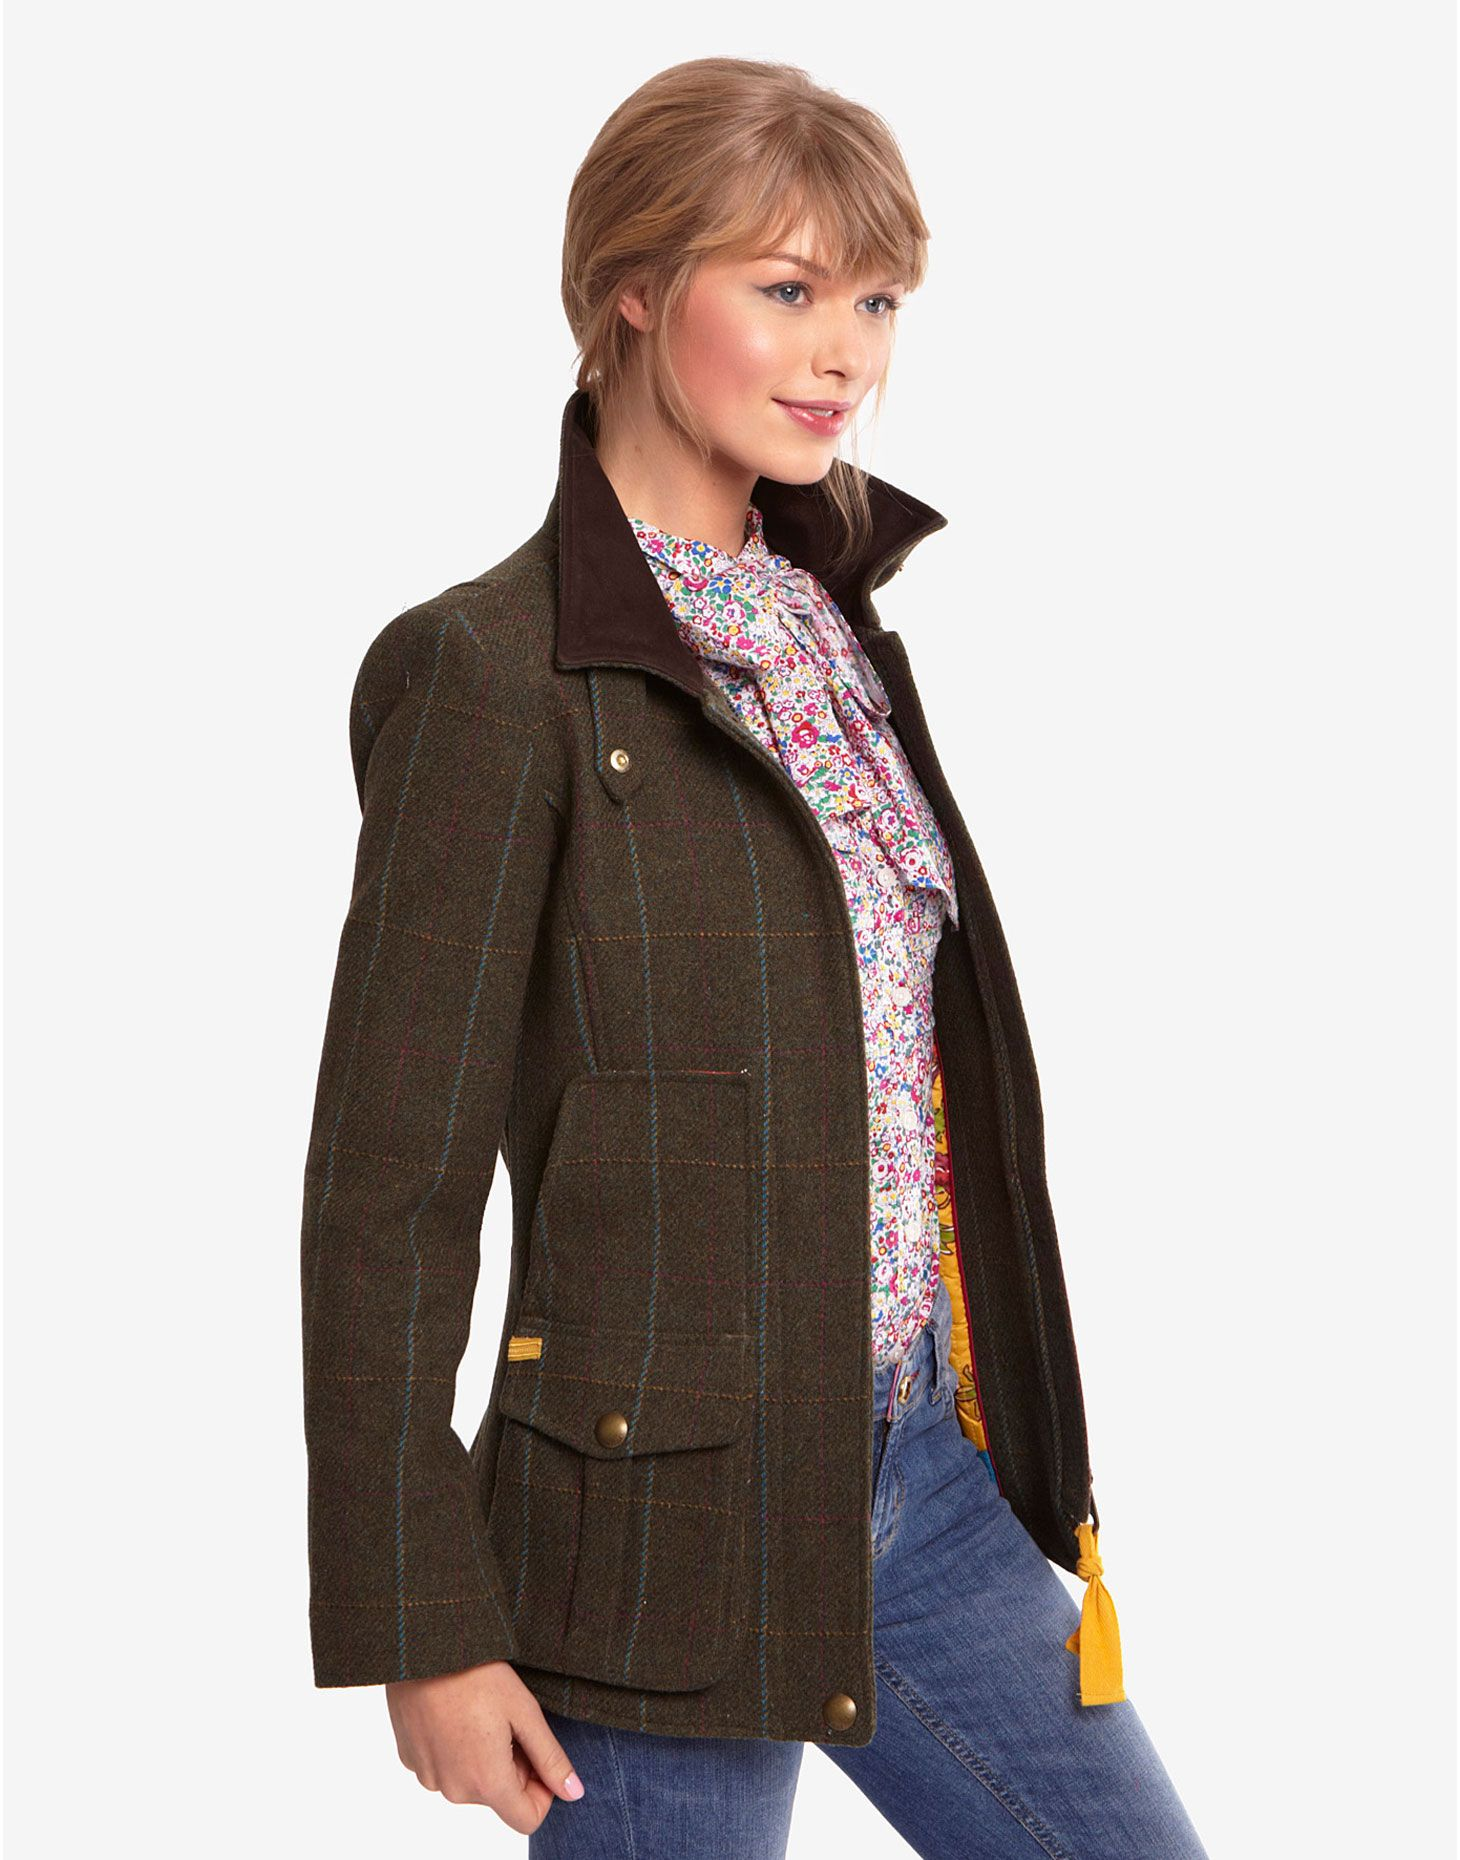 Joules - FIELDCOAT Womens Tweed Jacket | My Fashion faves ...